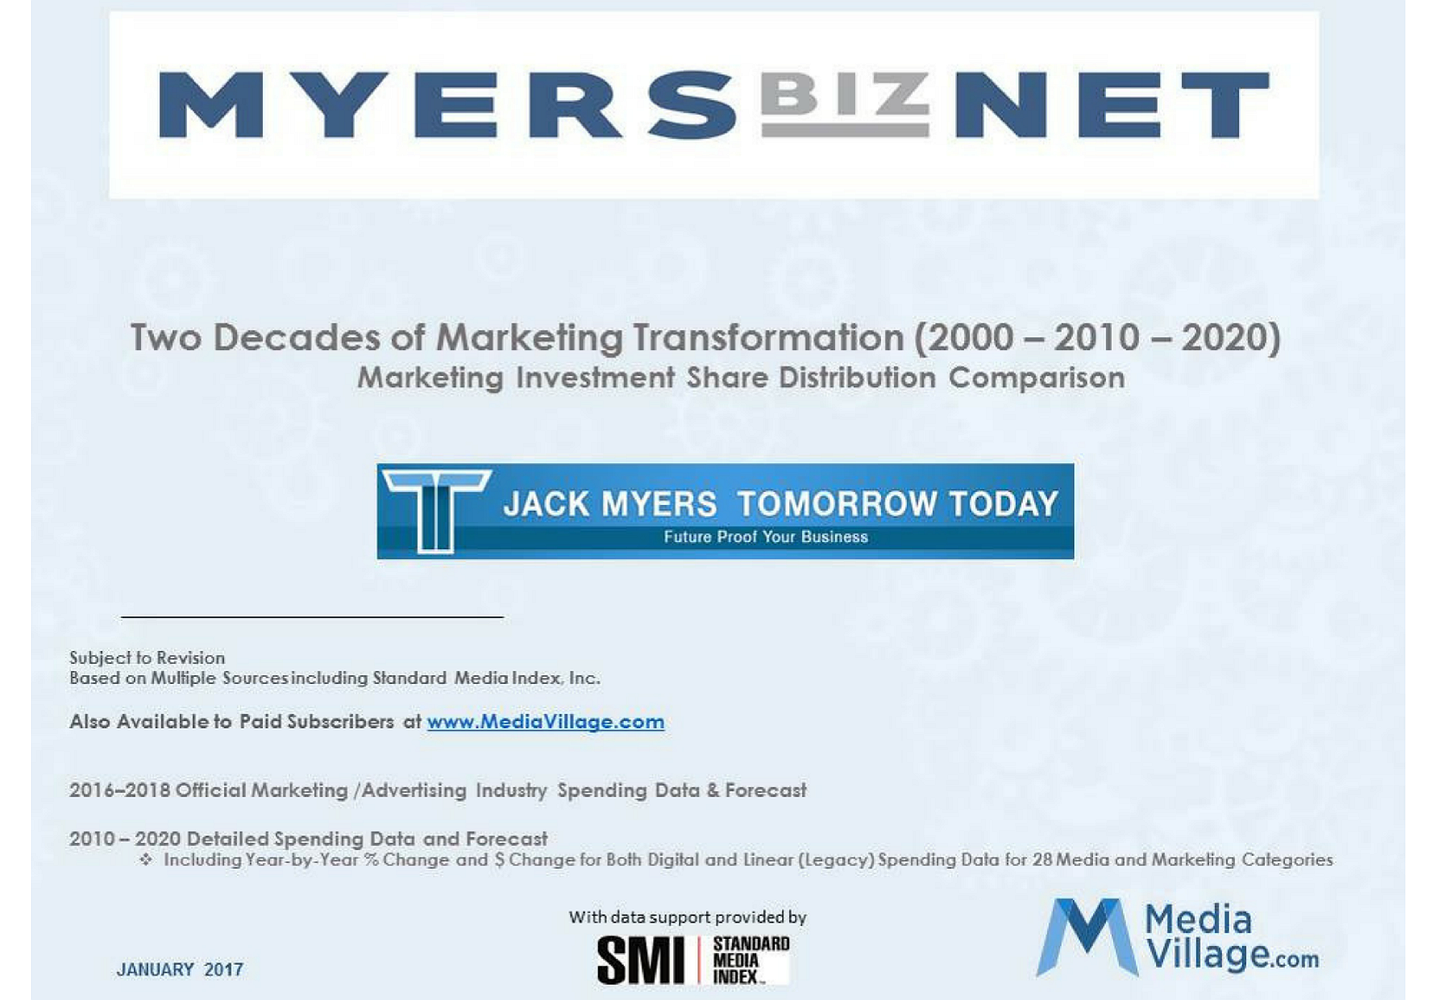 Two Decades of Marketing Transformation